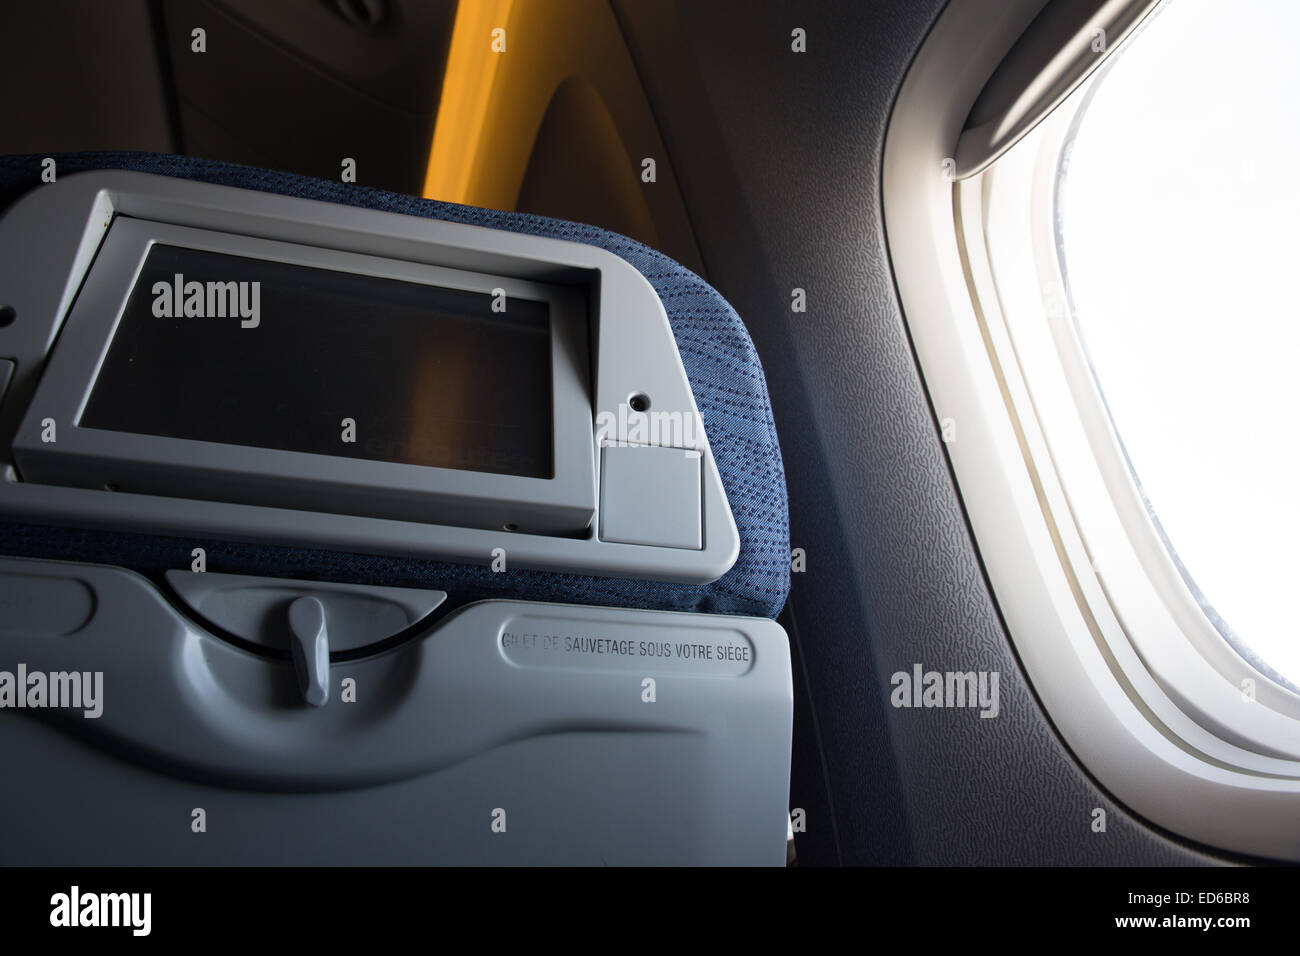 airplane window seat - Stock Image